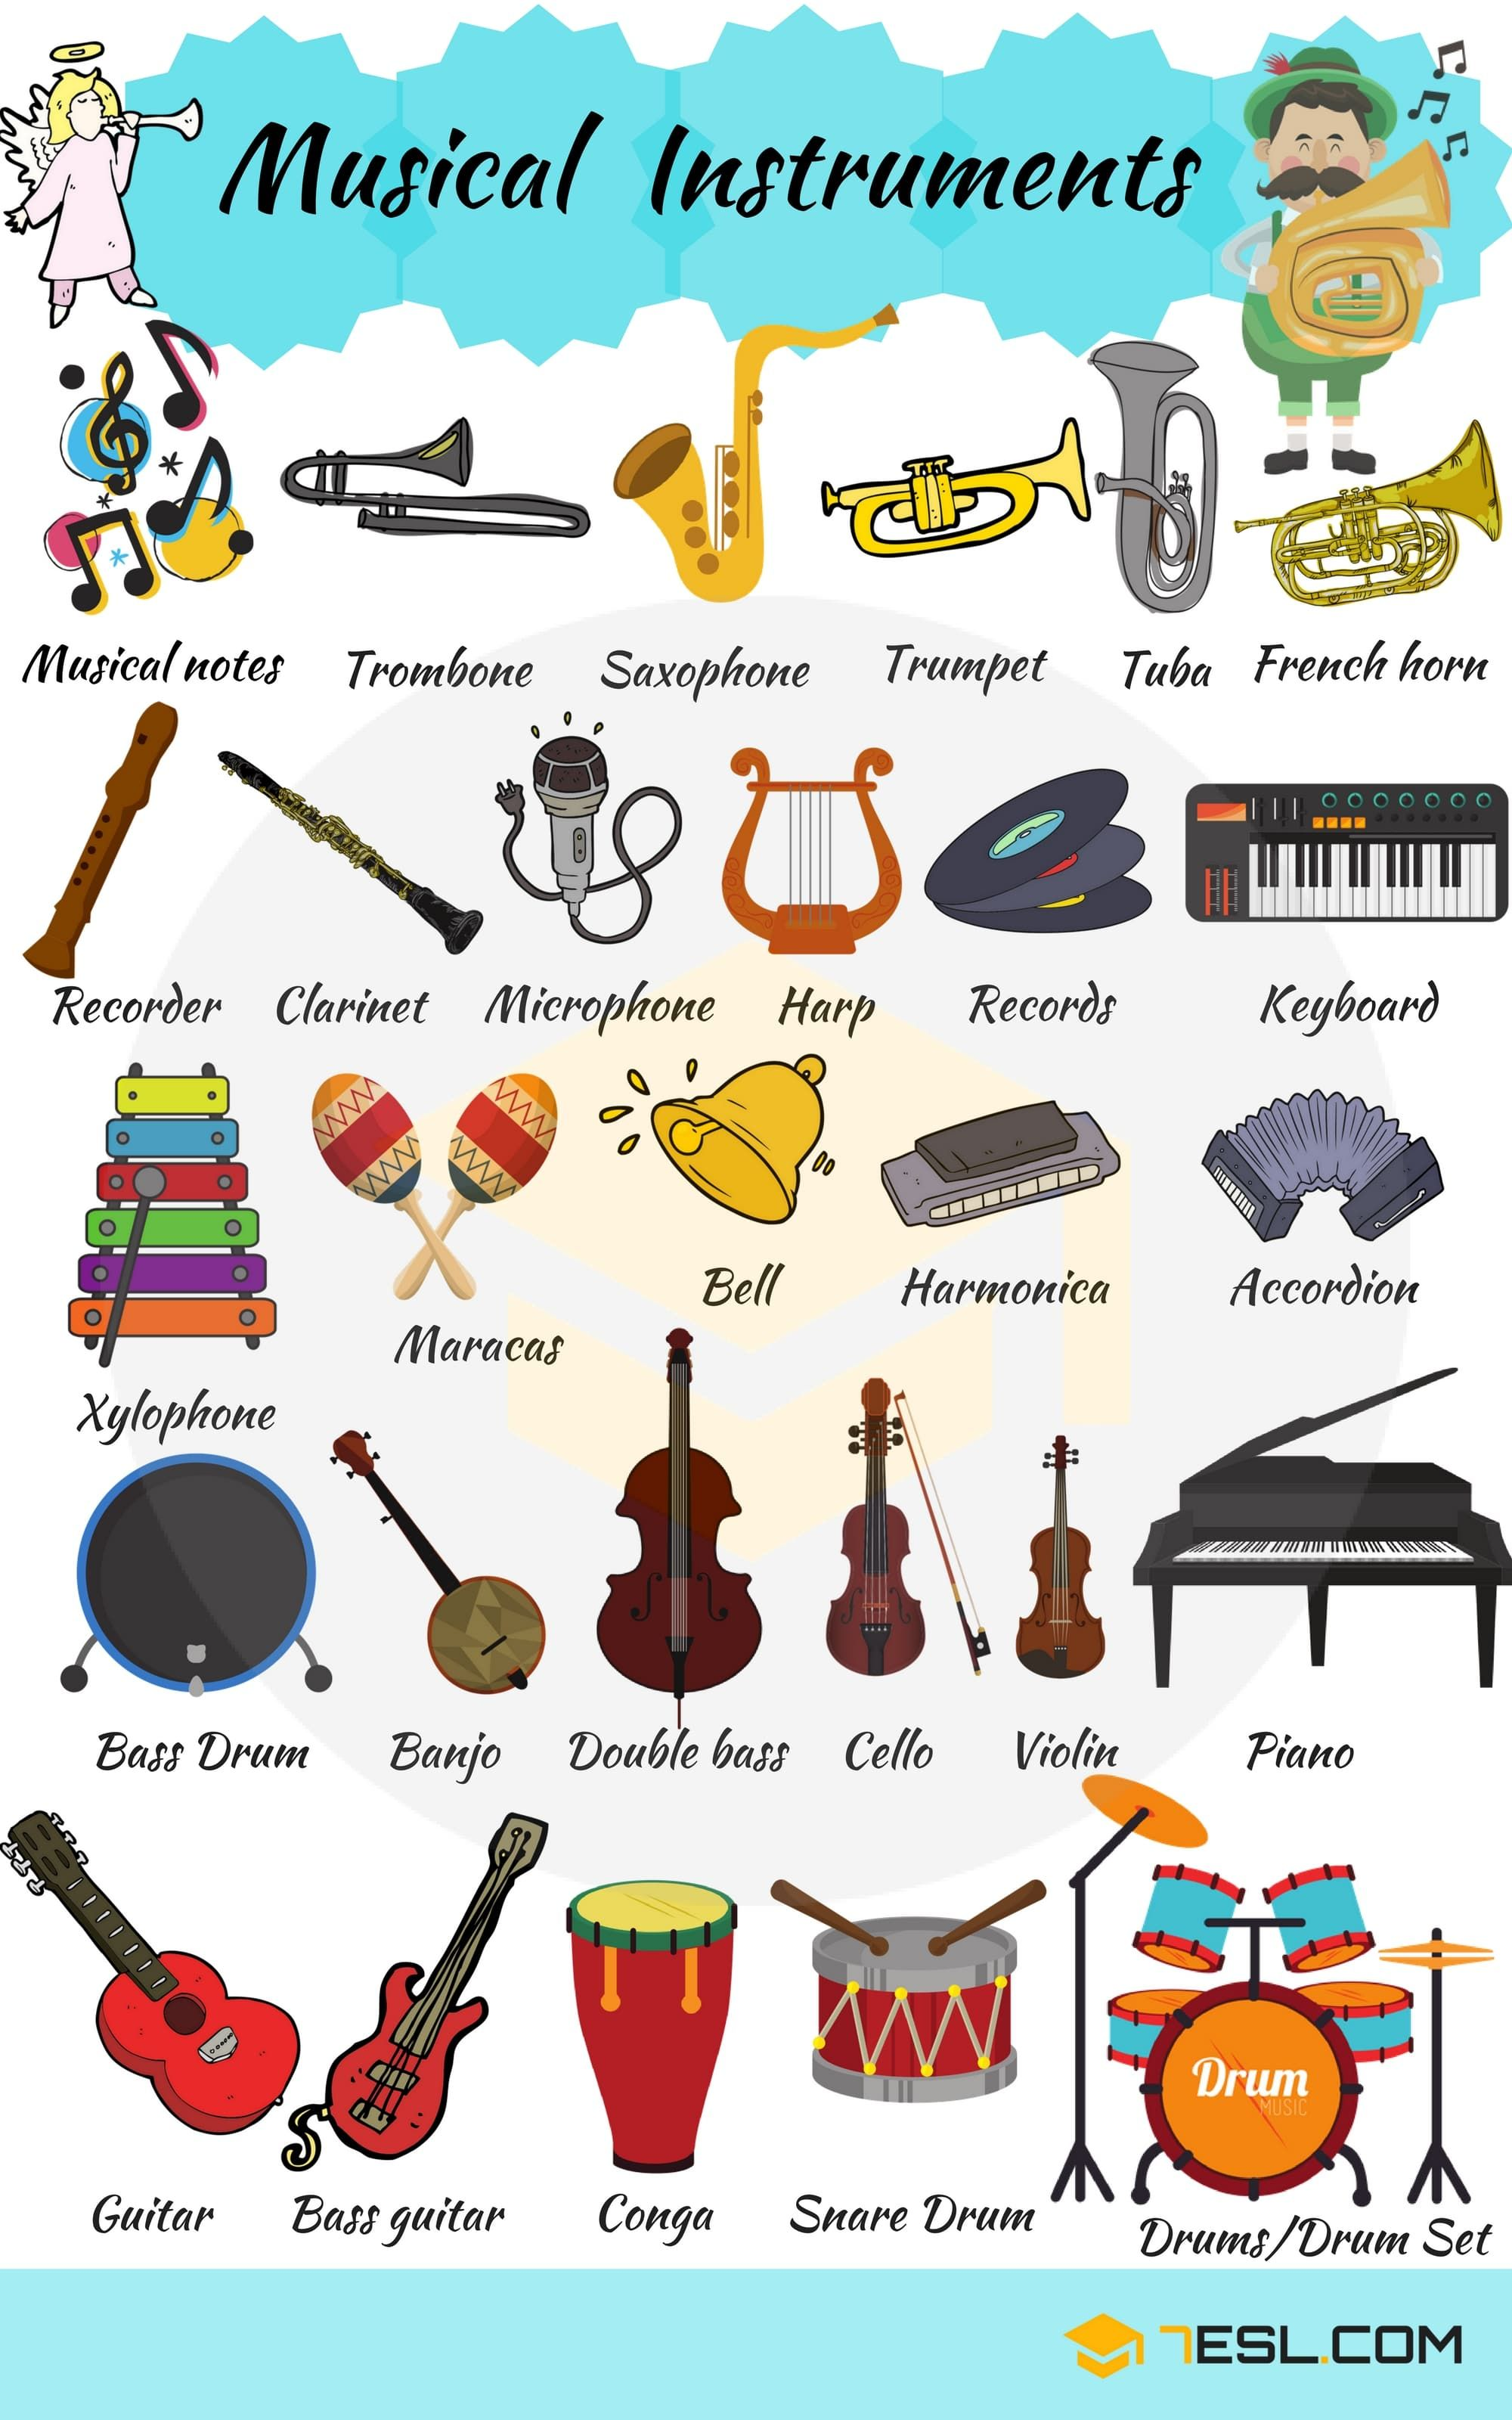 Musical Instruments Vocabulary in English | Ingles | Pinterest ...